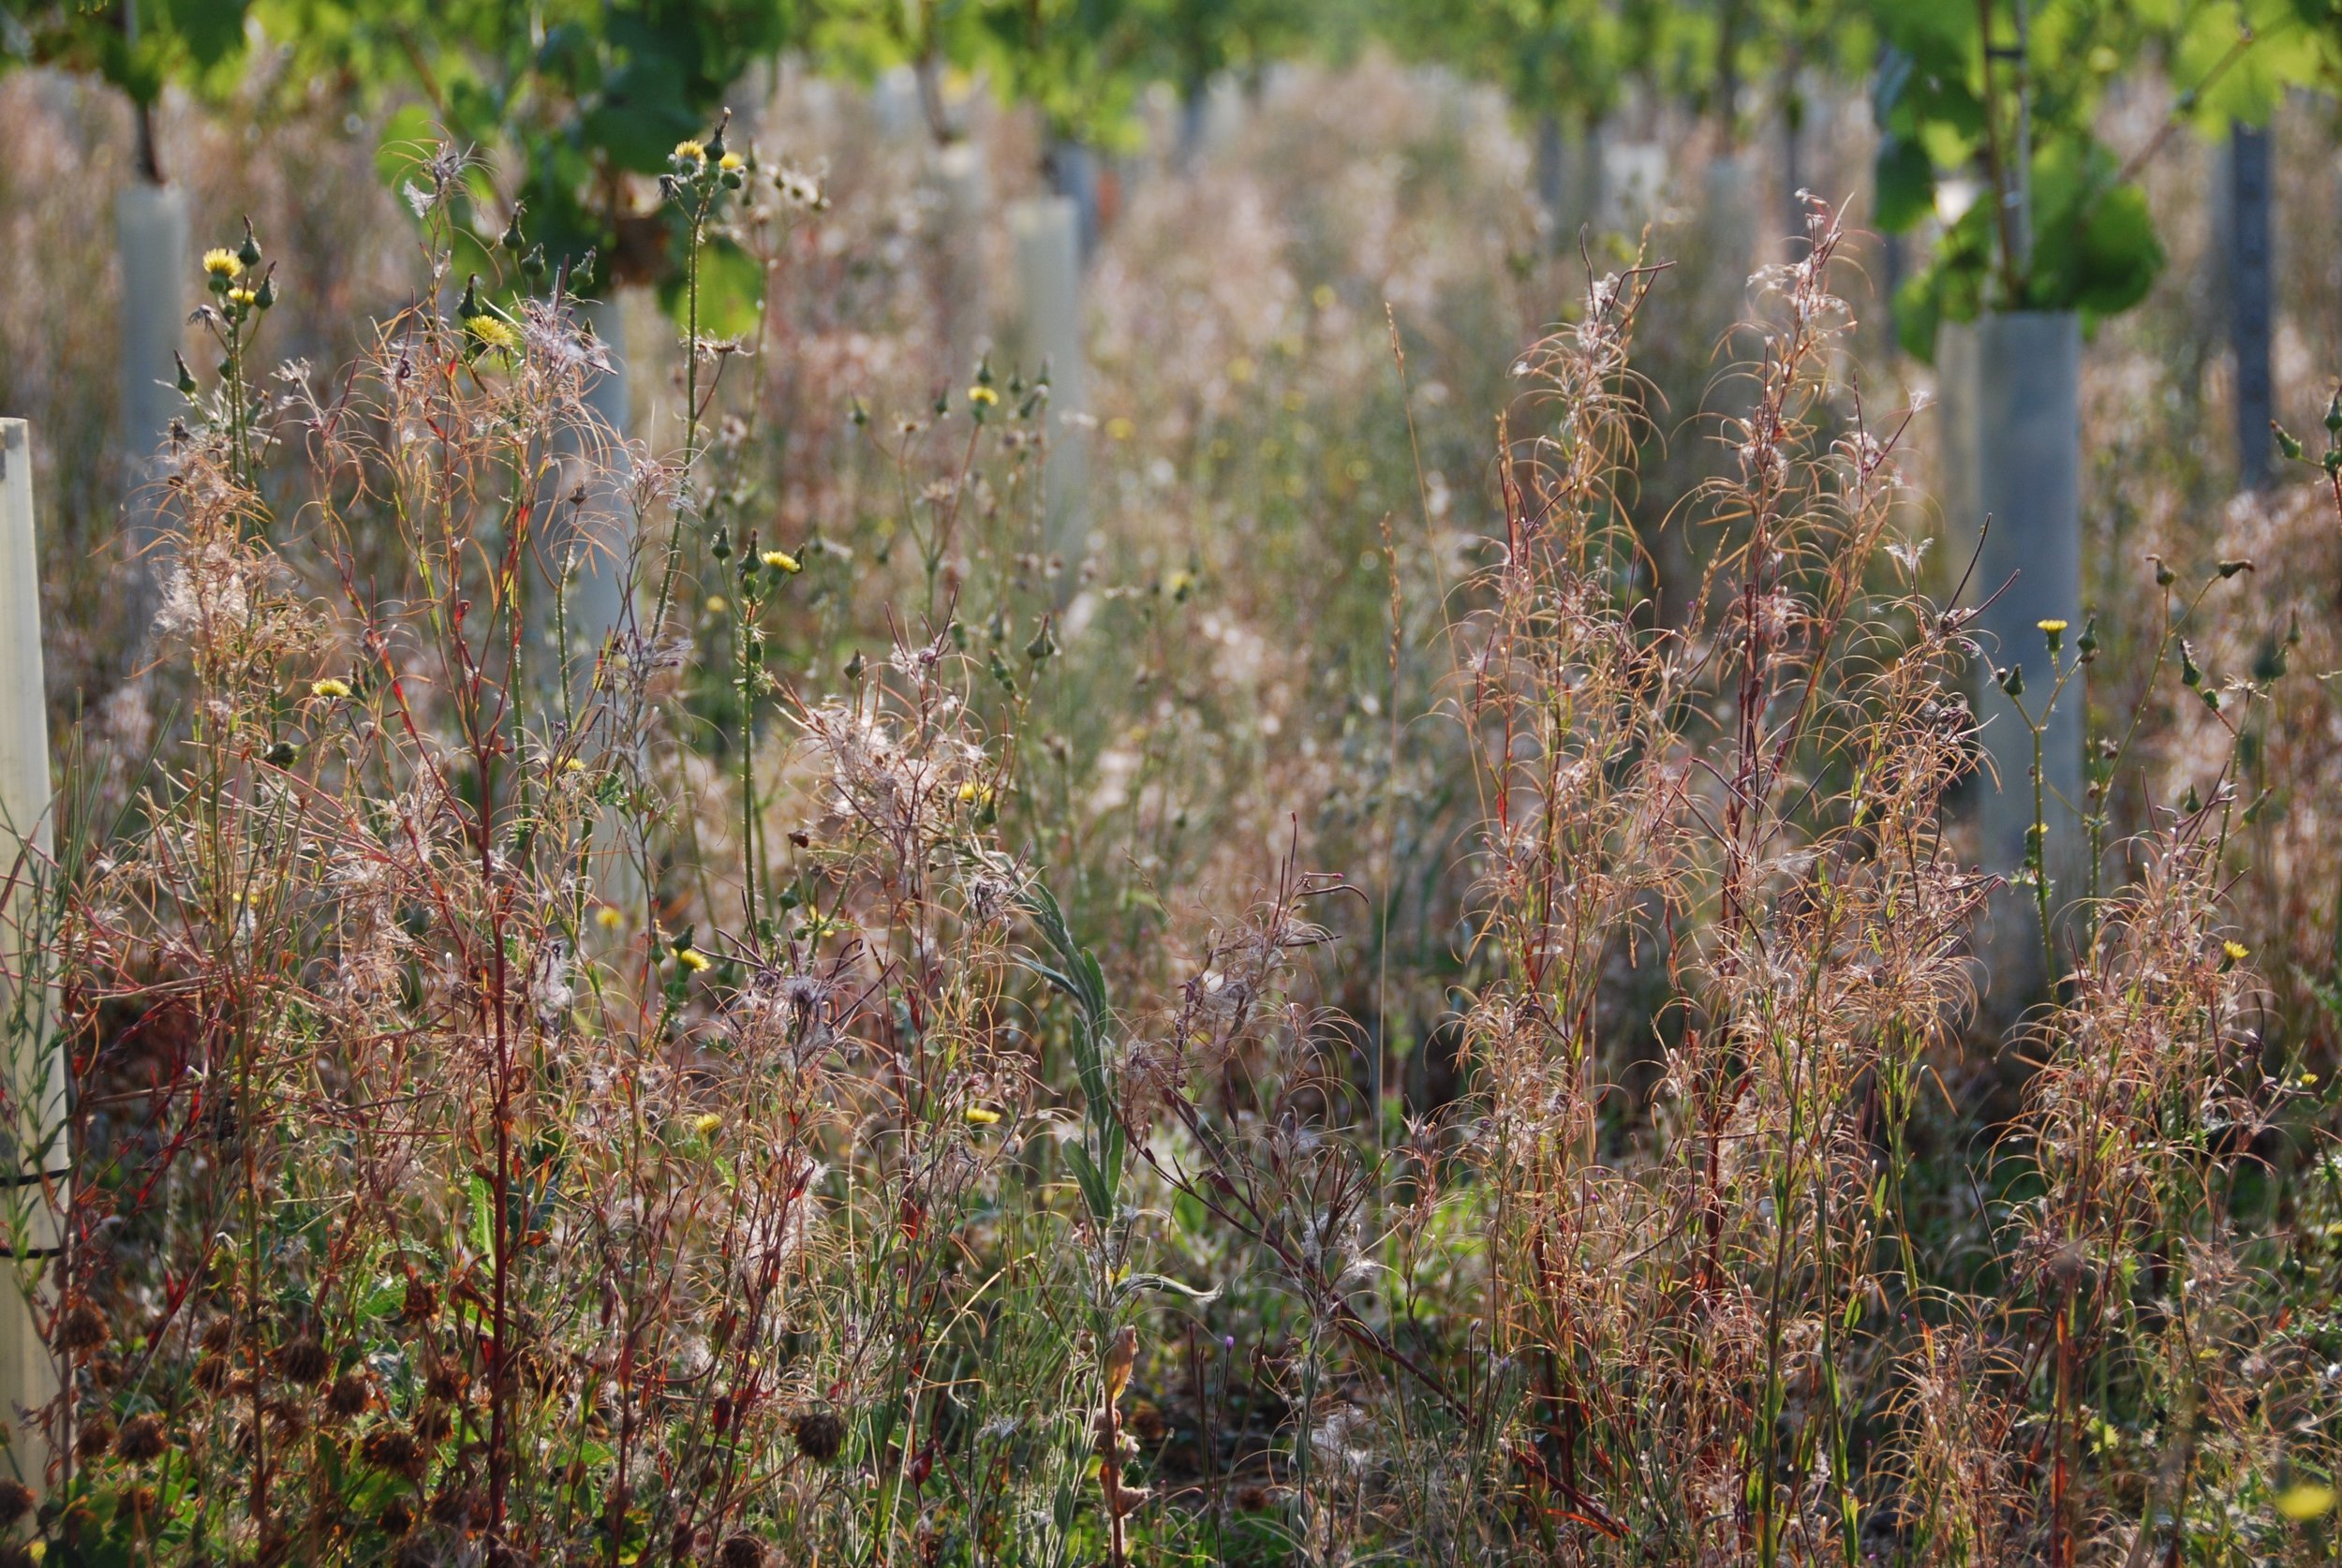 As well as the vines, the resilient Willowherb is also thriving in some places across site...